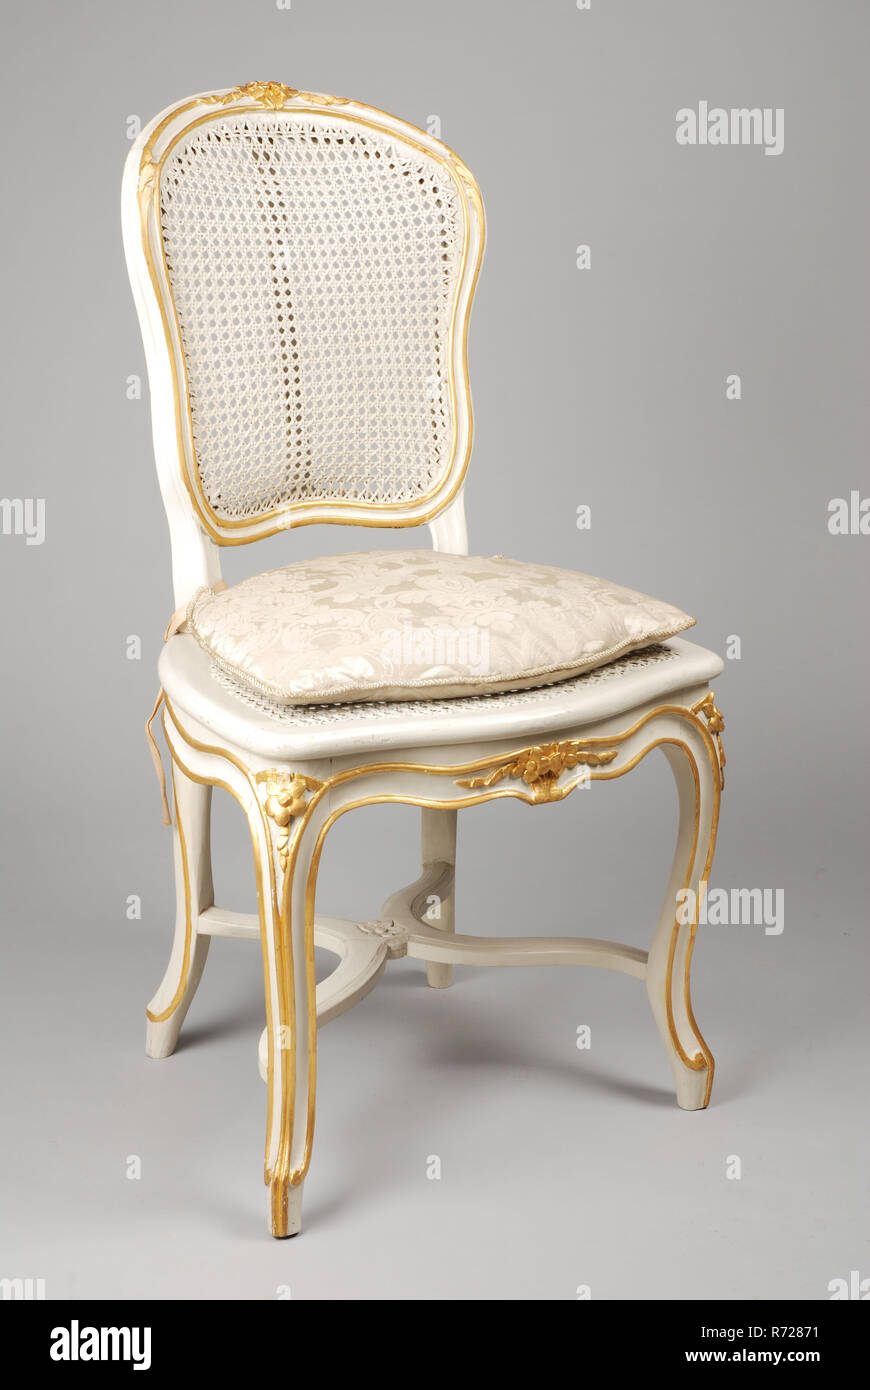 Painted Rattan Furniture White Painted Straight Rococo Chair Chair Furniture Furniture